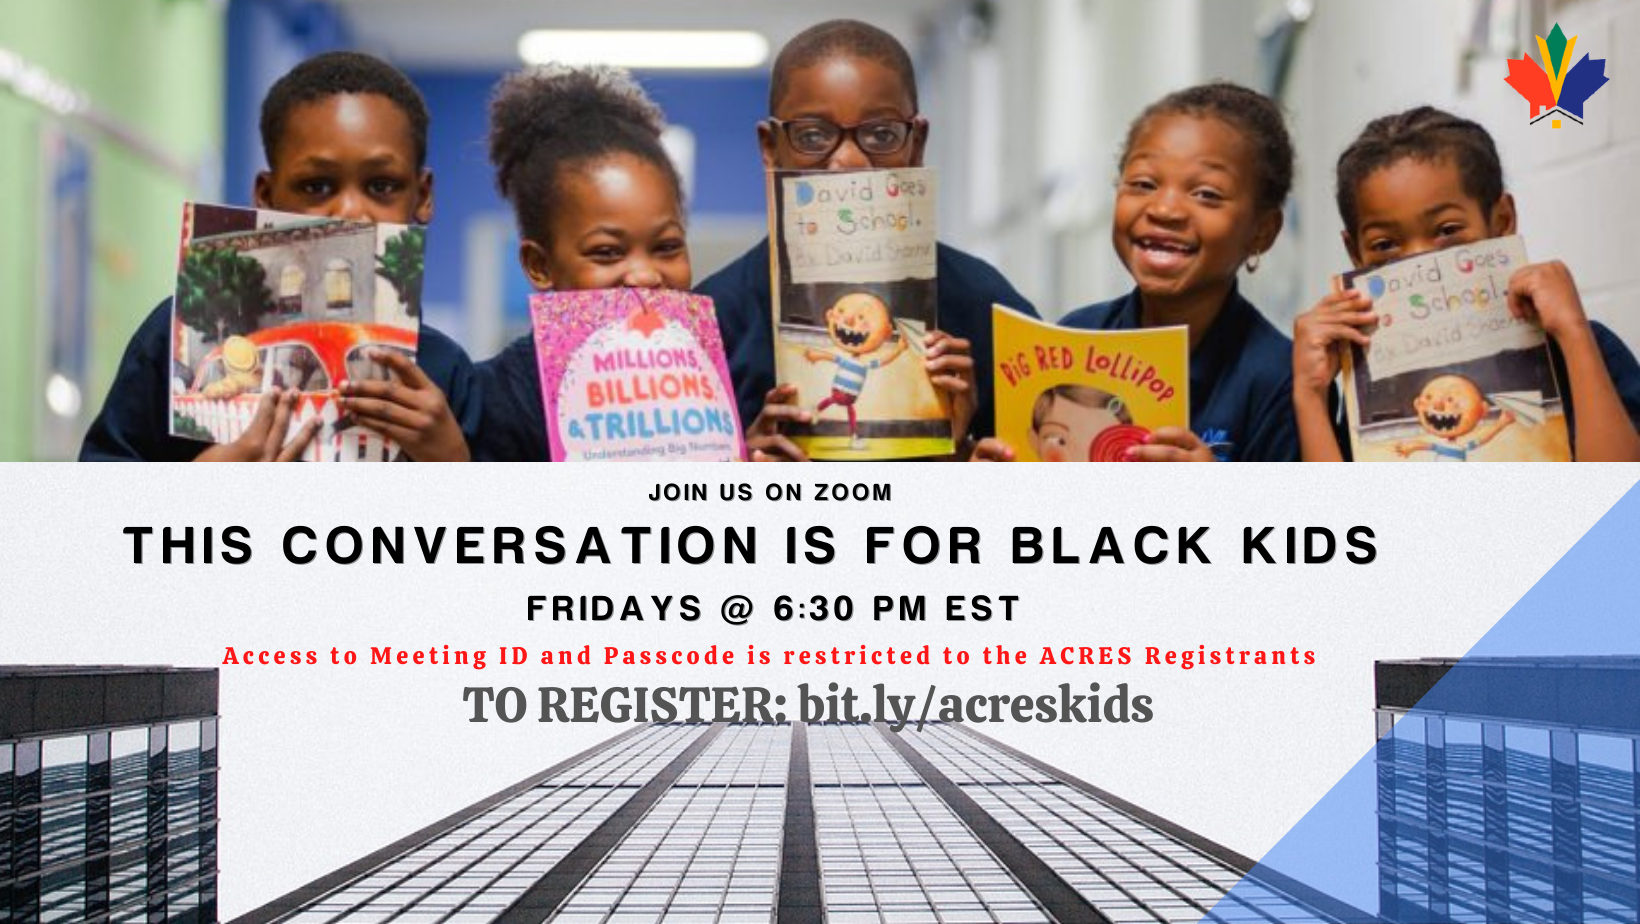 This Event Is For Black Kids